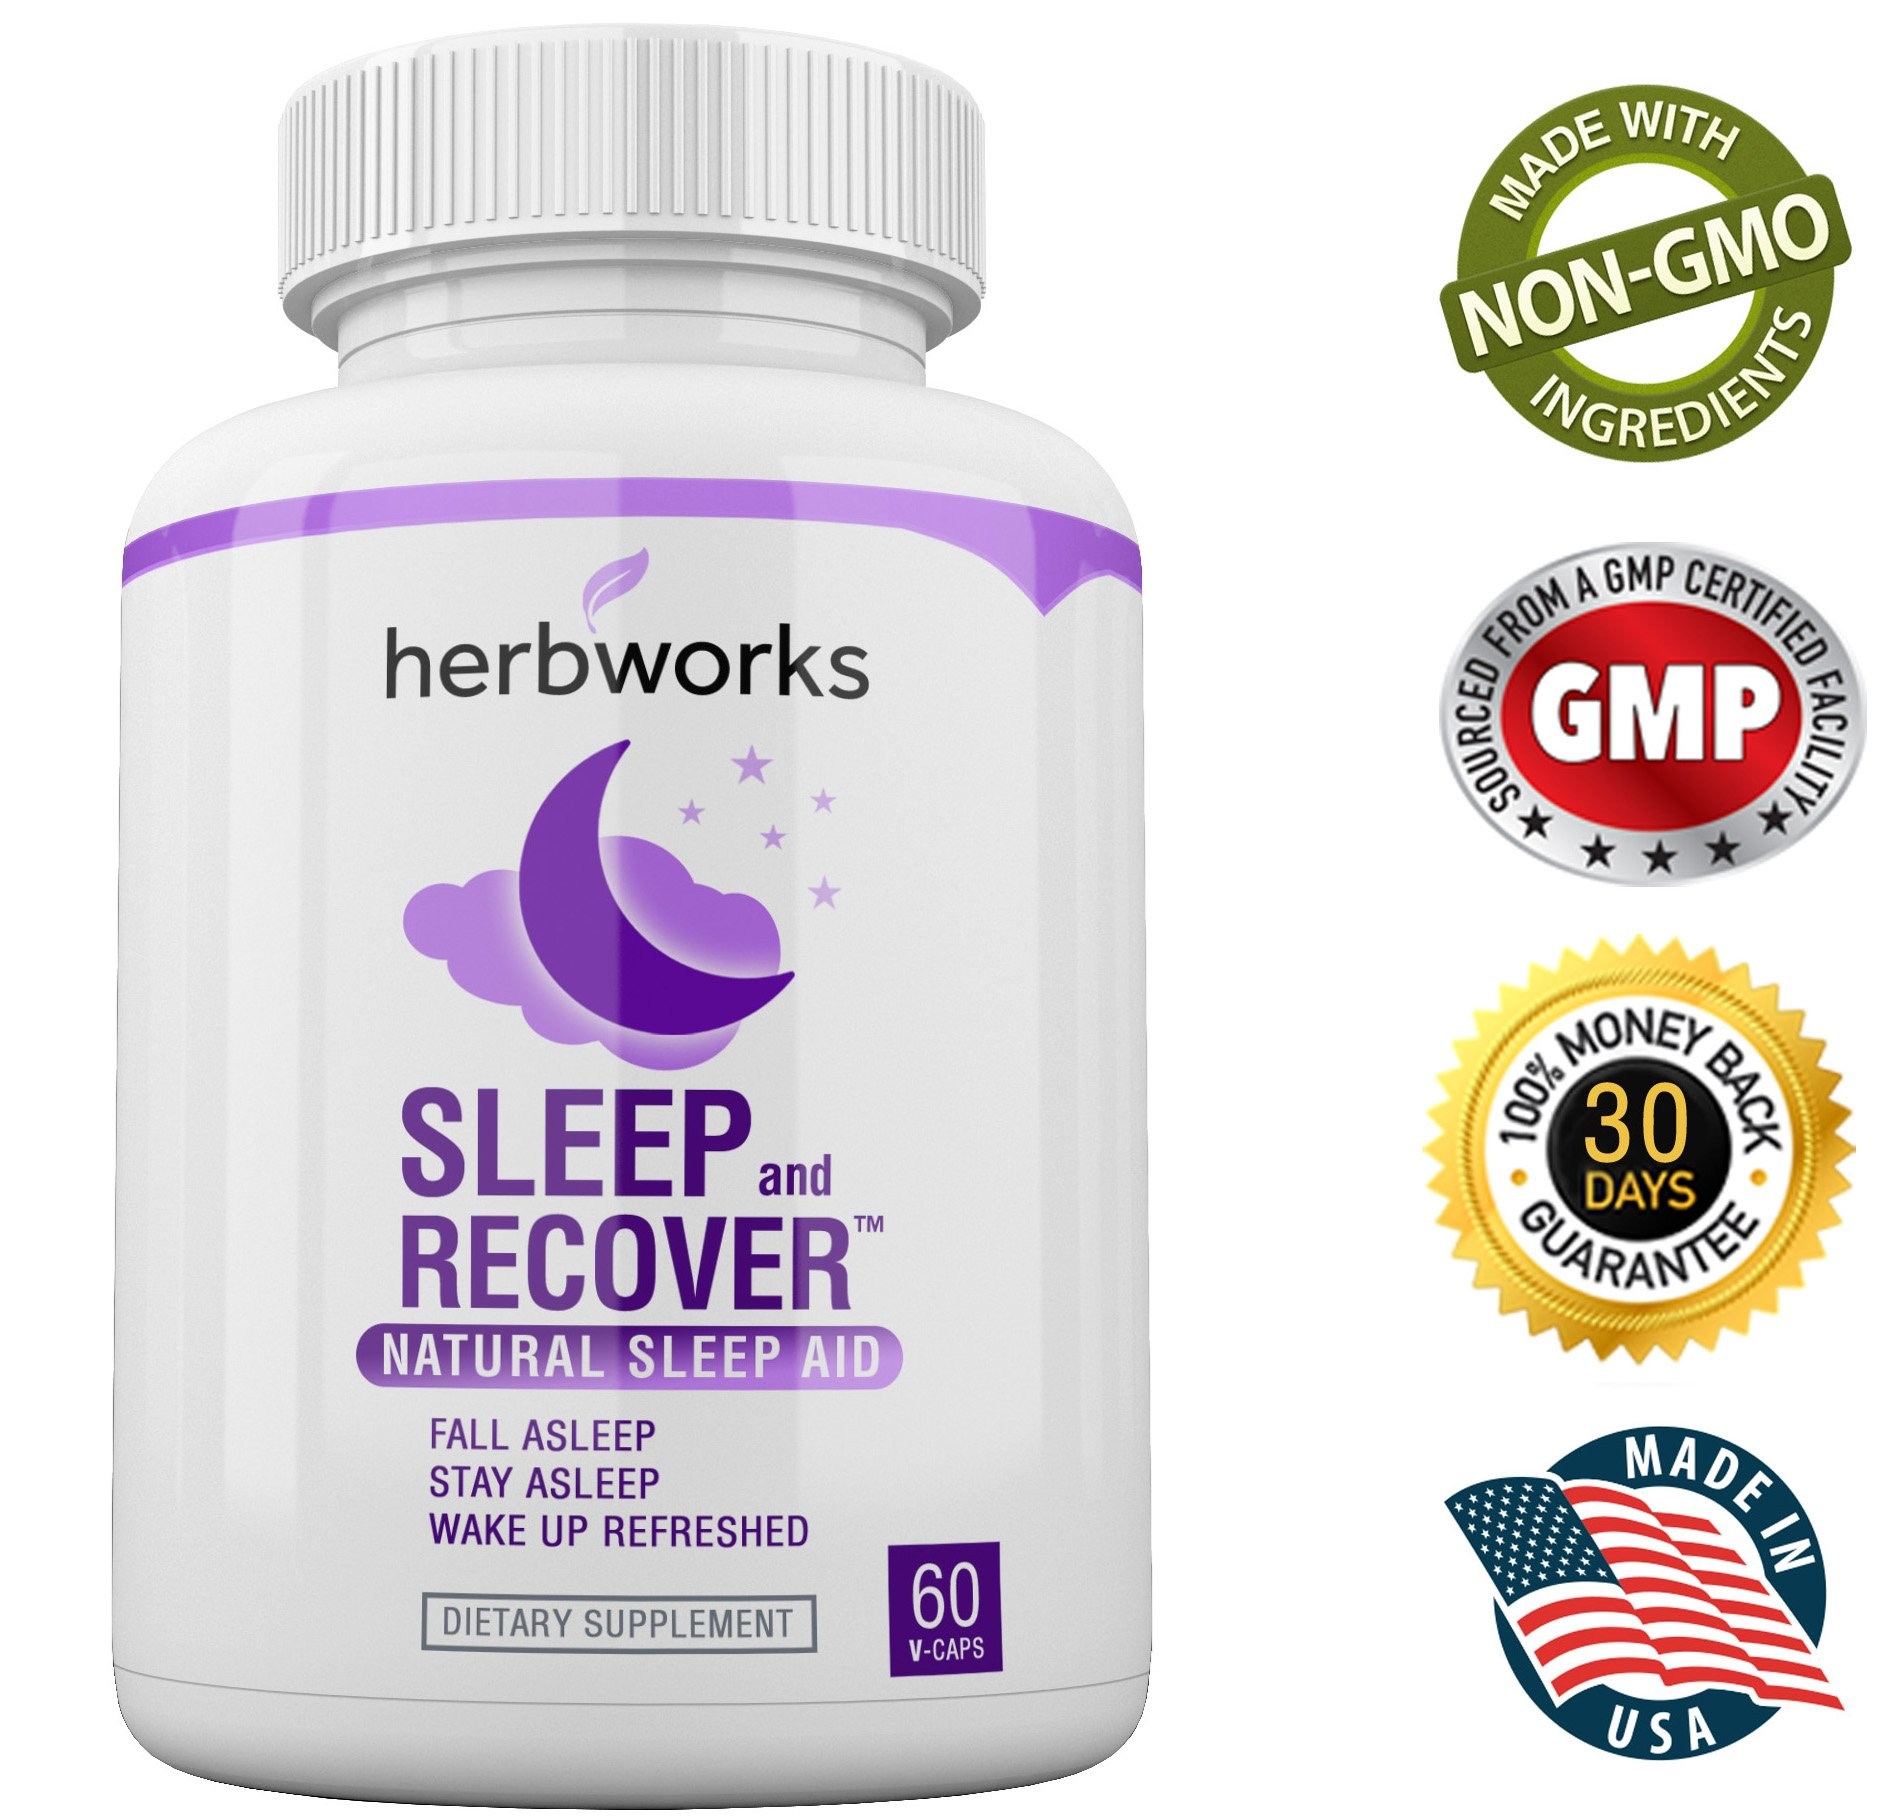 Sleep and Recover - Natural Sleep Aid - Non Habit Forming - 60 V-Capsules by HerbWorks (Image #5)